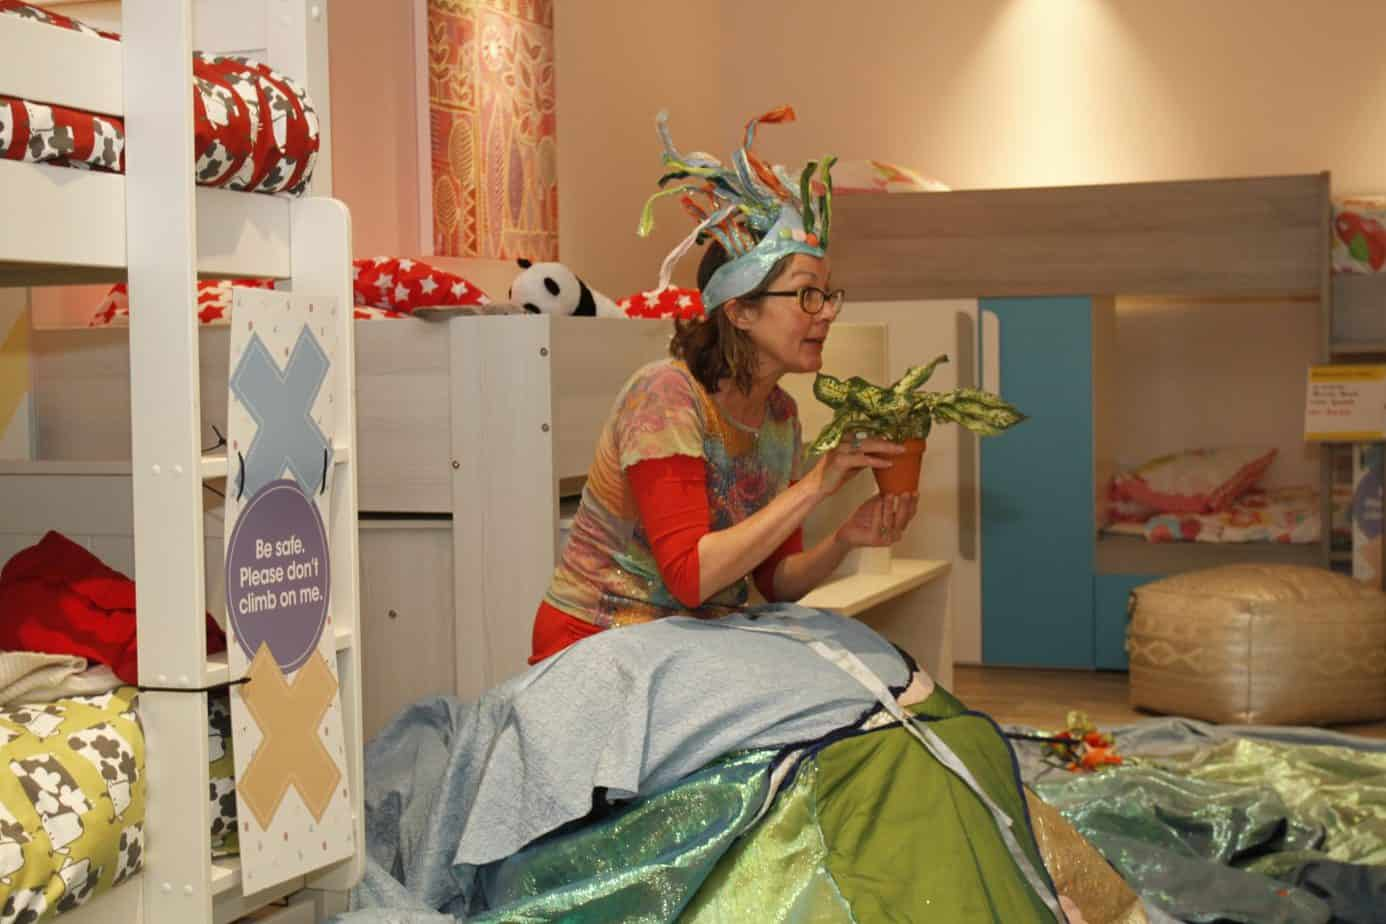 Sorry telling at the bedtime story event at benson for beds